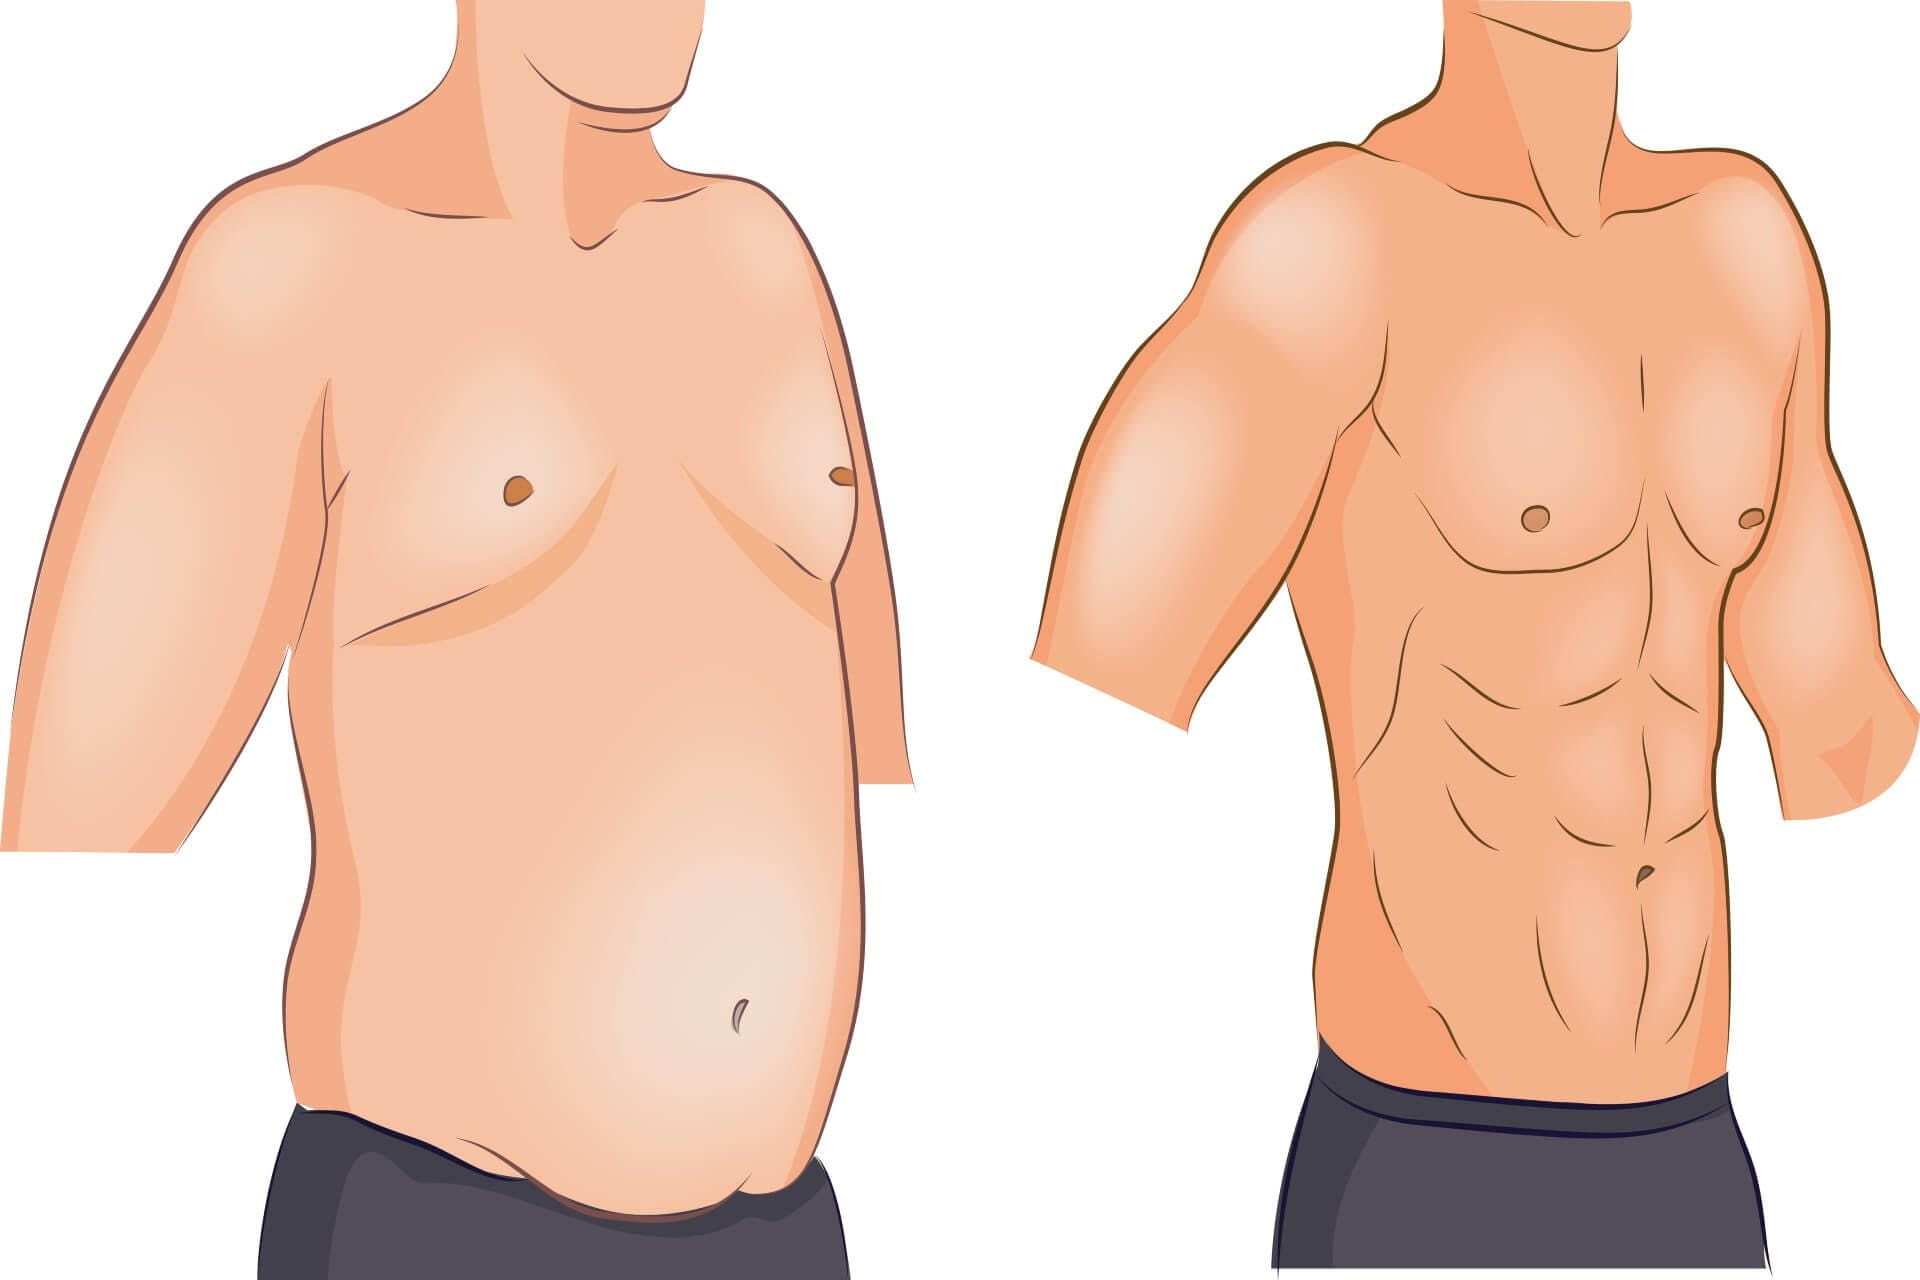 Gynecomastia Severity